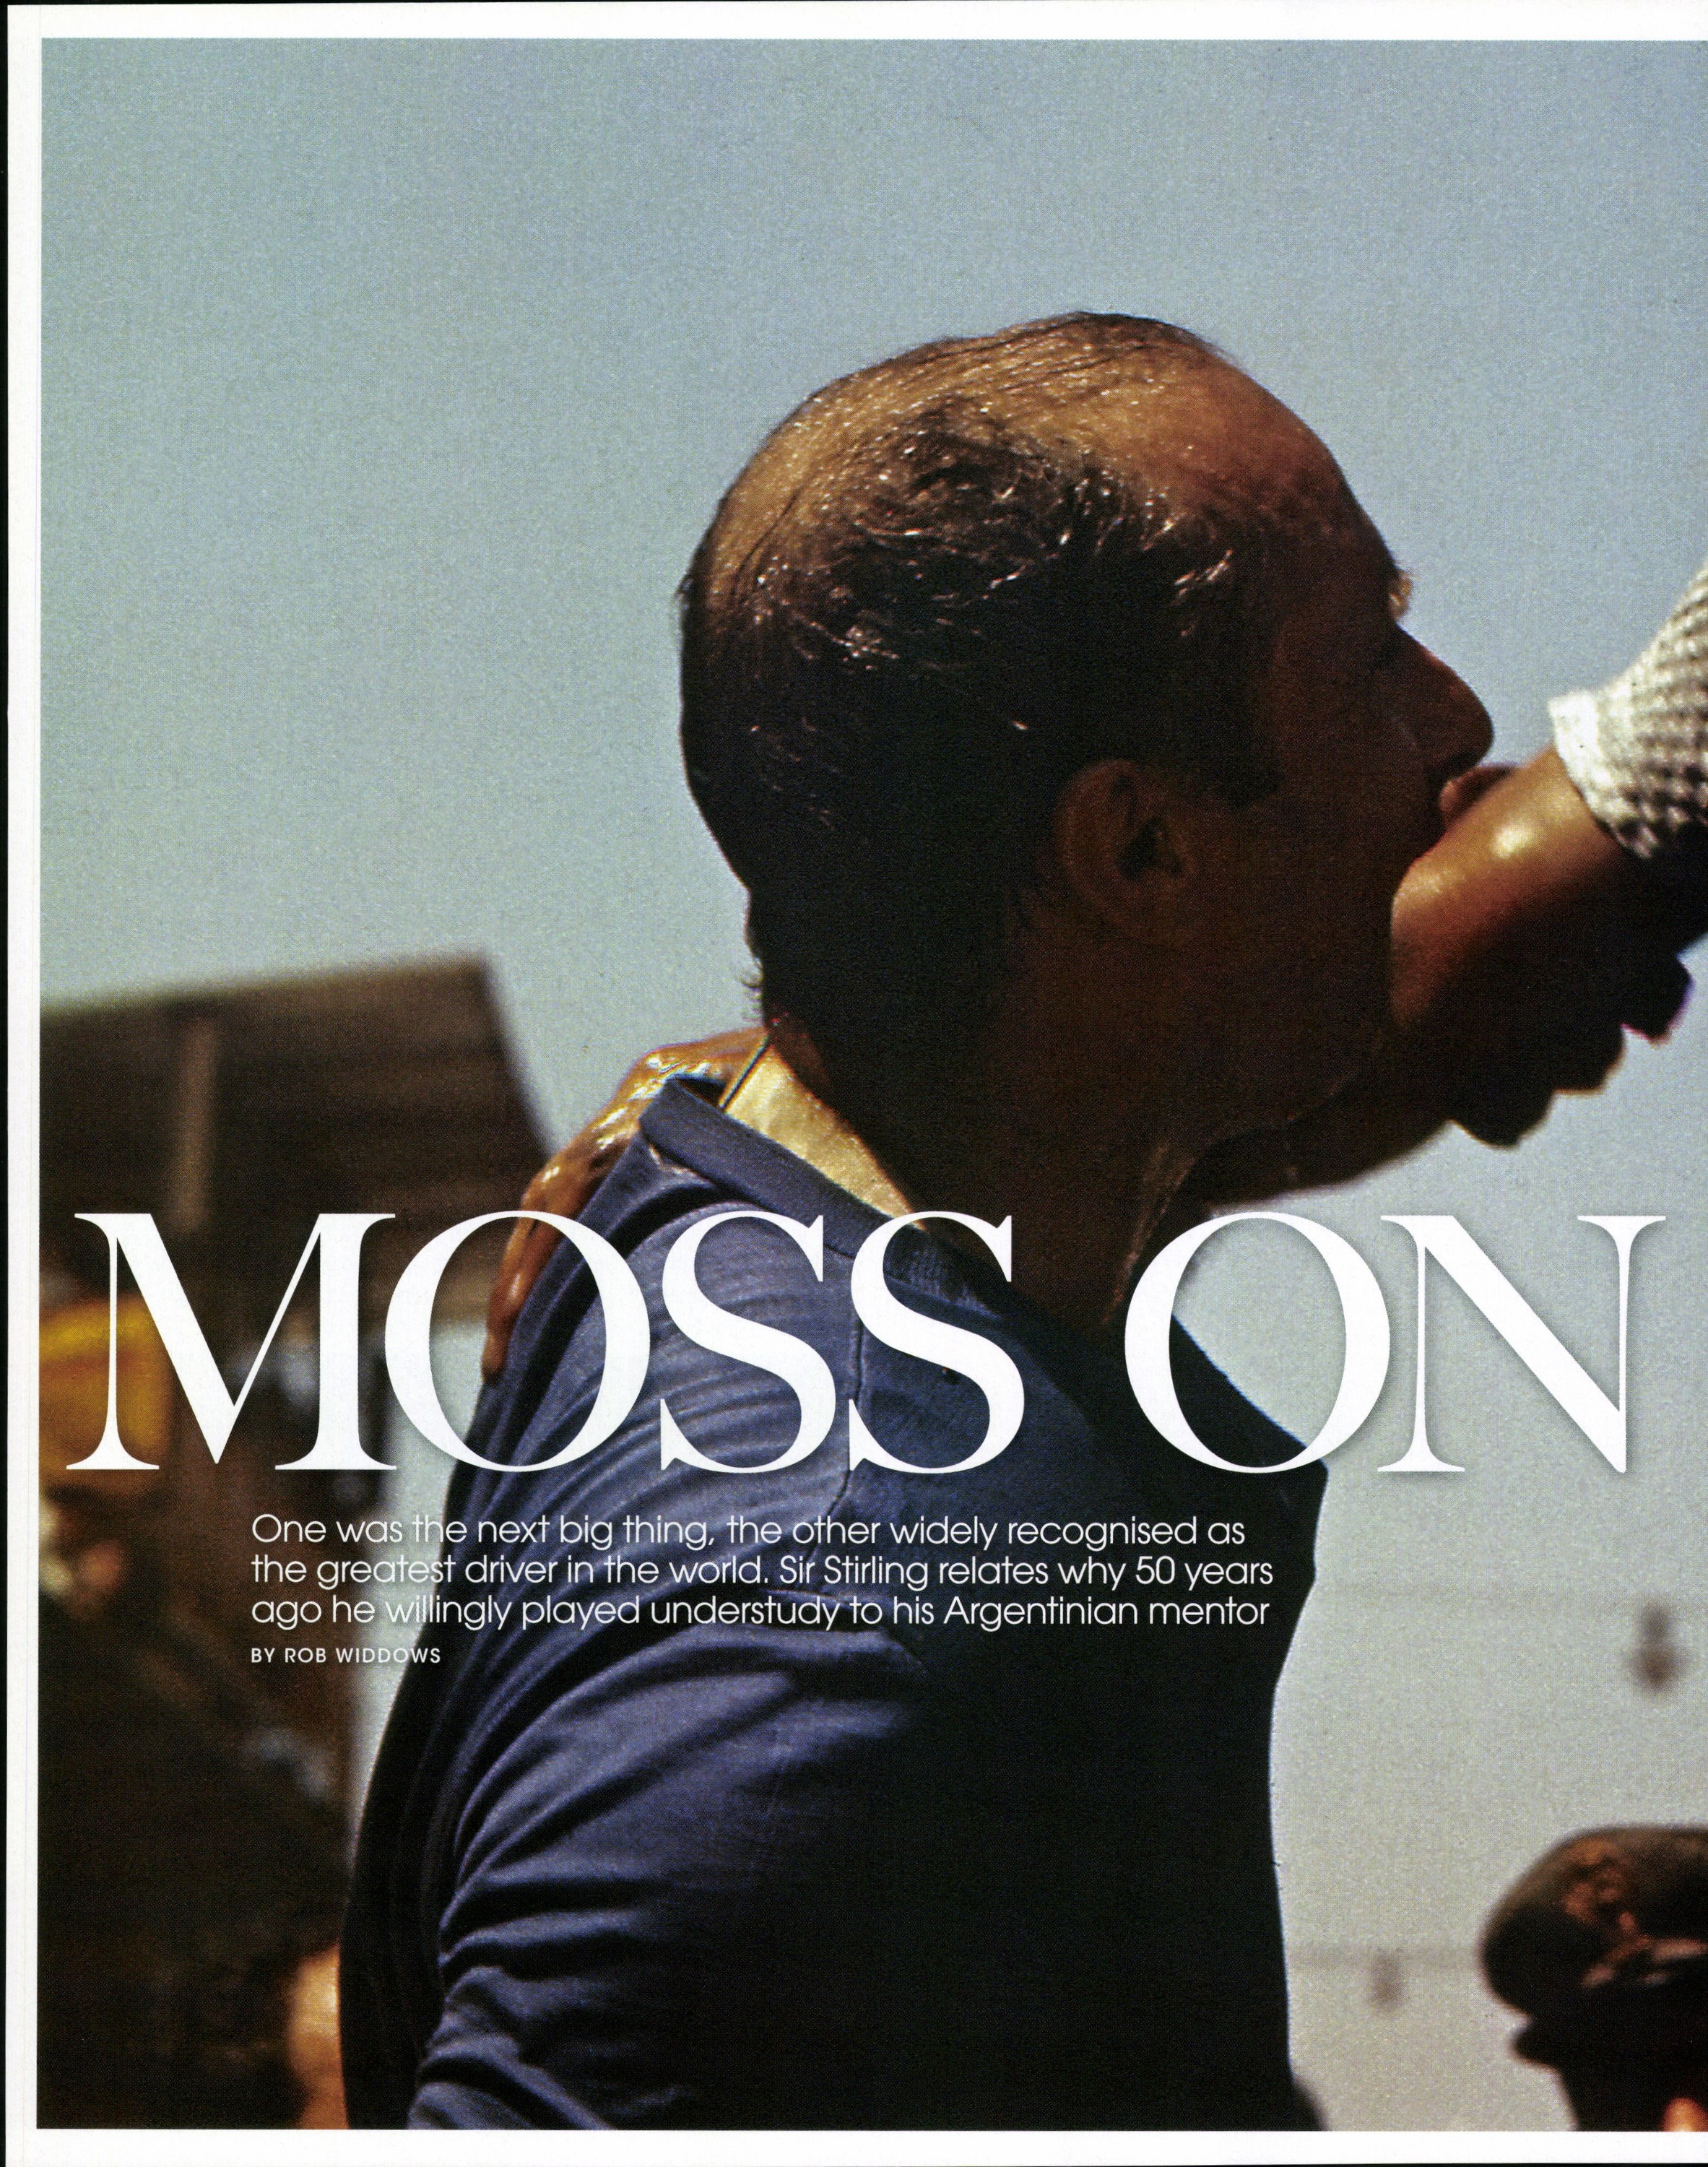 Moss and Fangio image